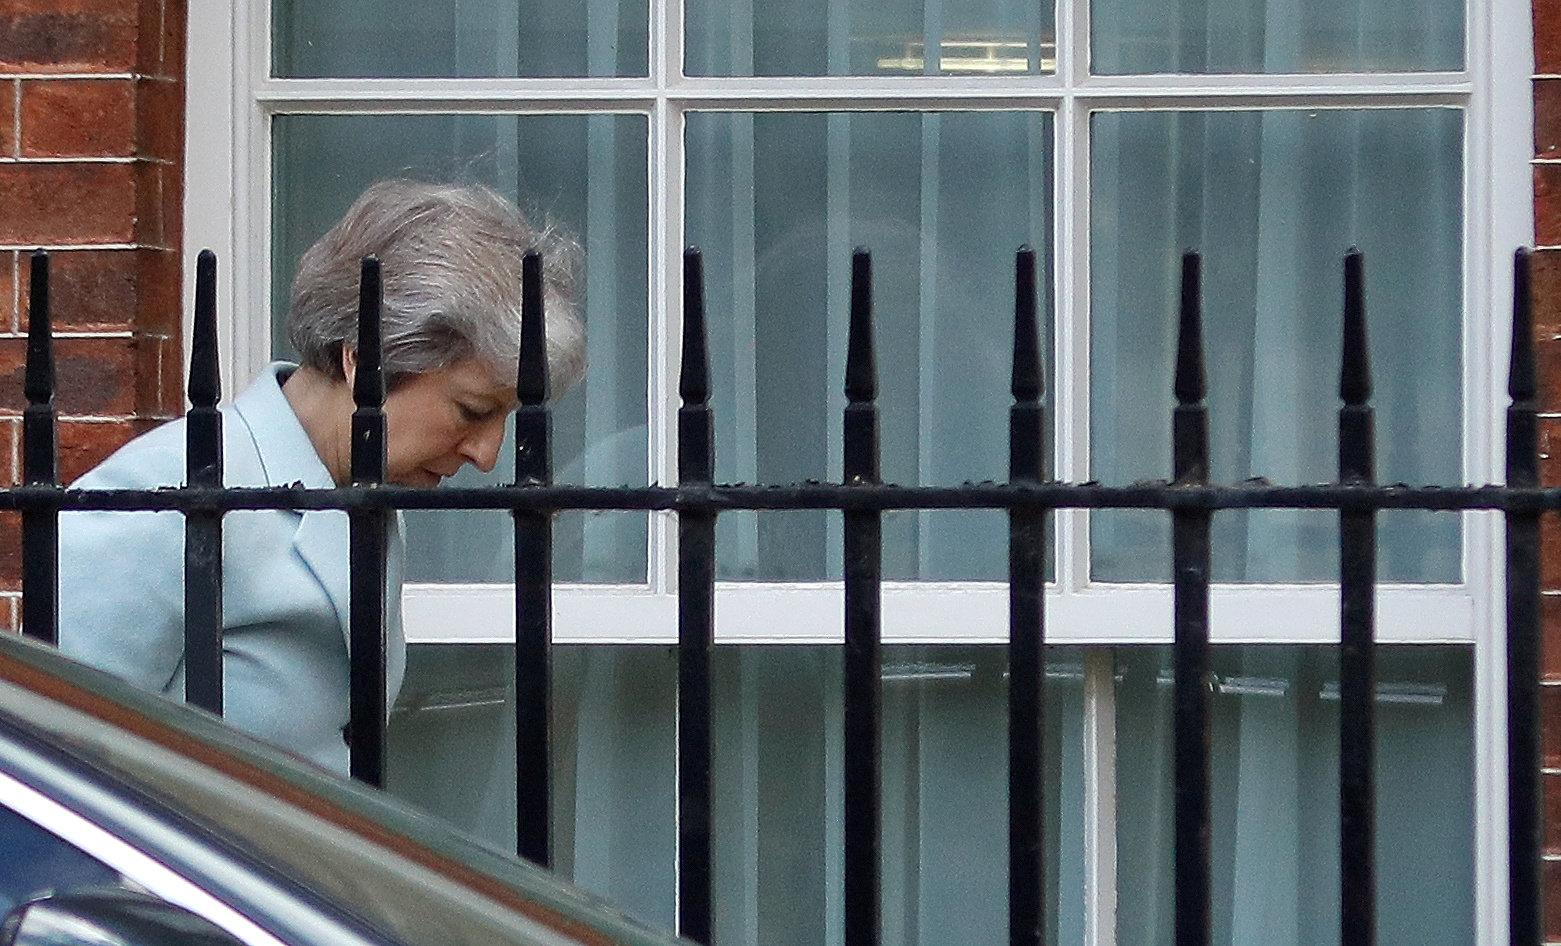 Theresa May arrives at the back entrance of 10 Downing Street ahead of an update on Brexit negotiations (Picture: Reuters)